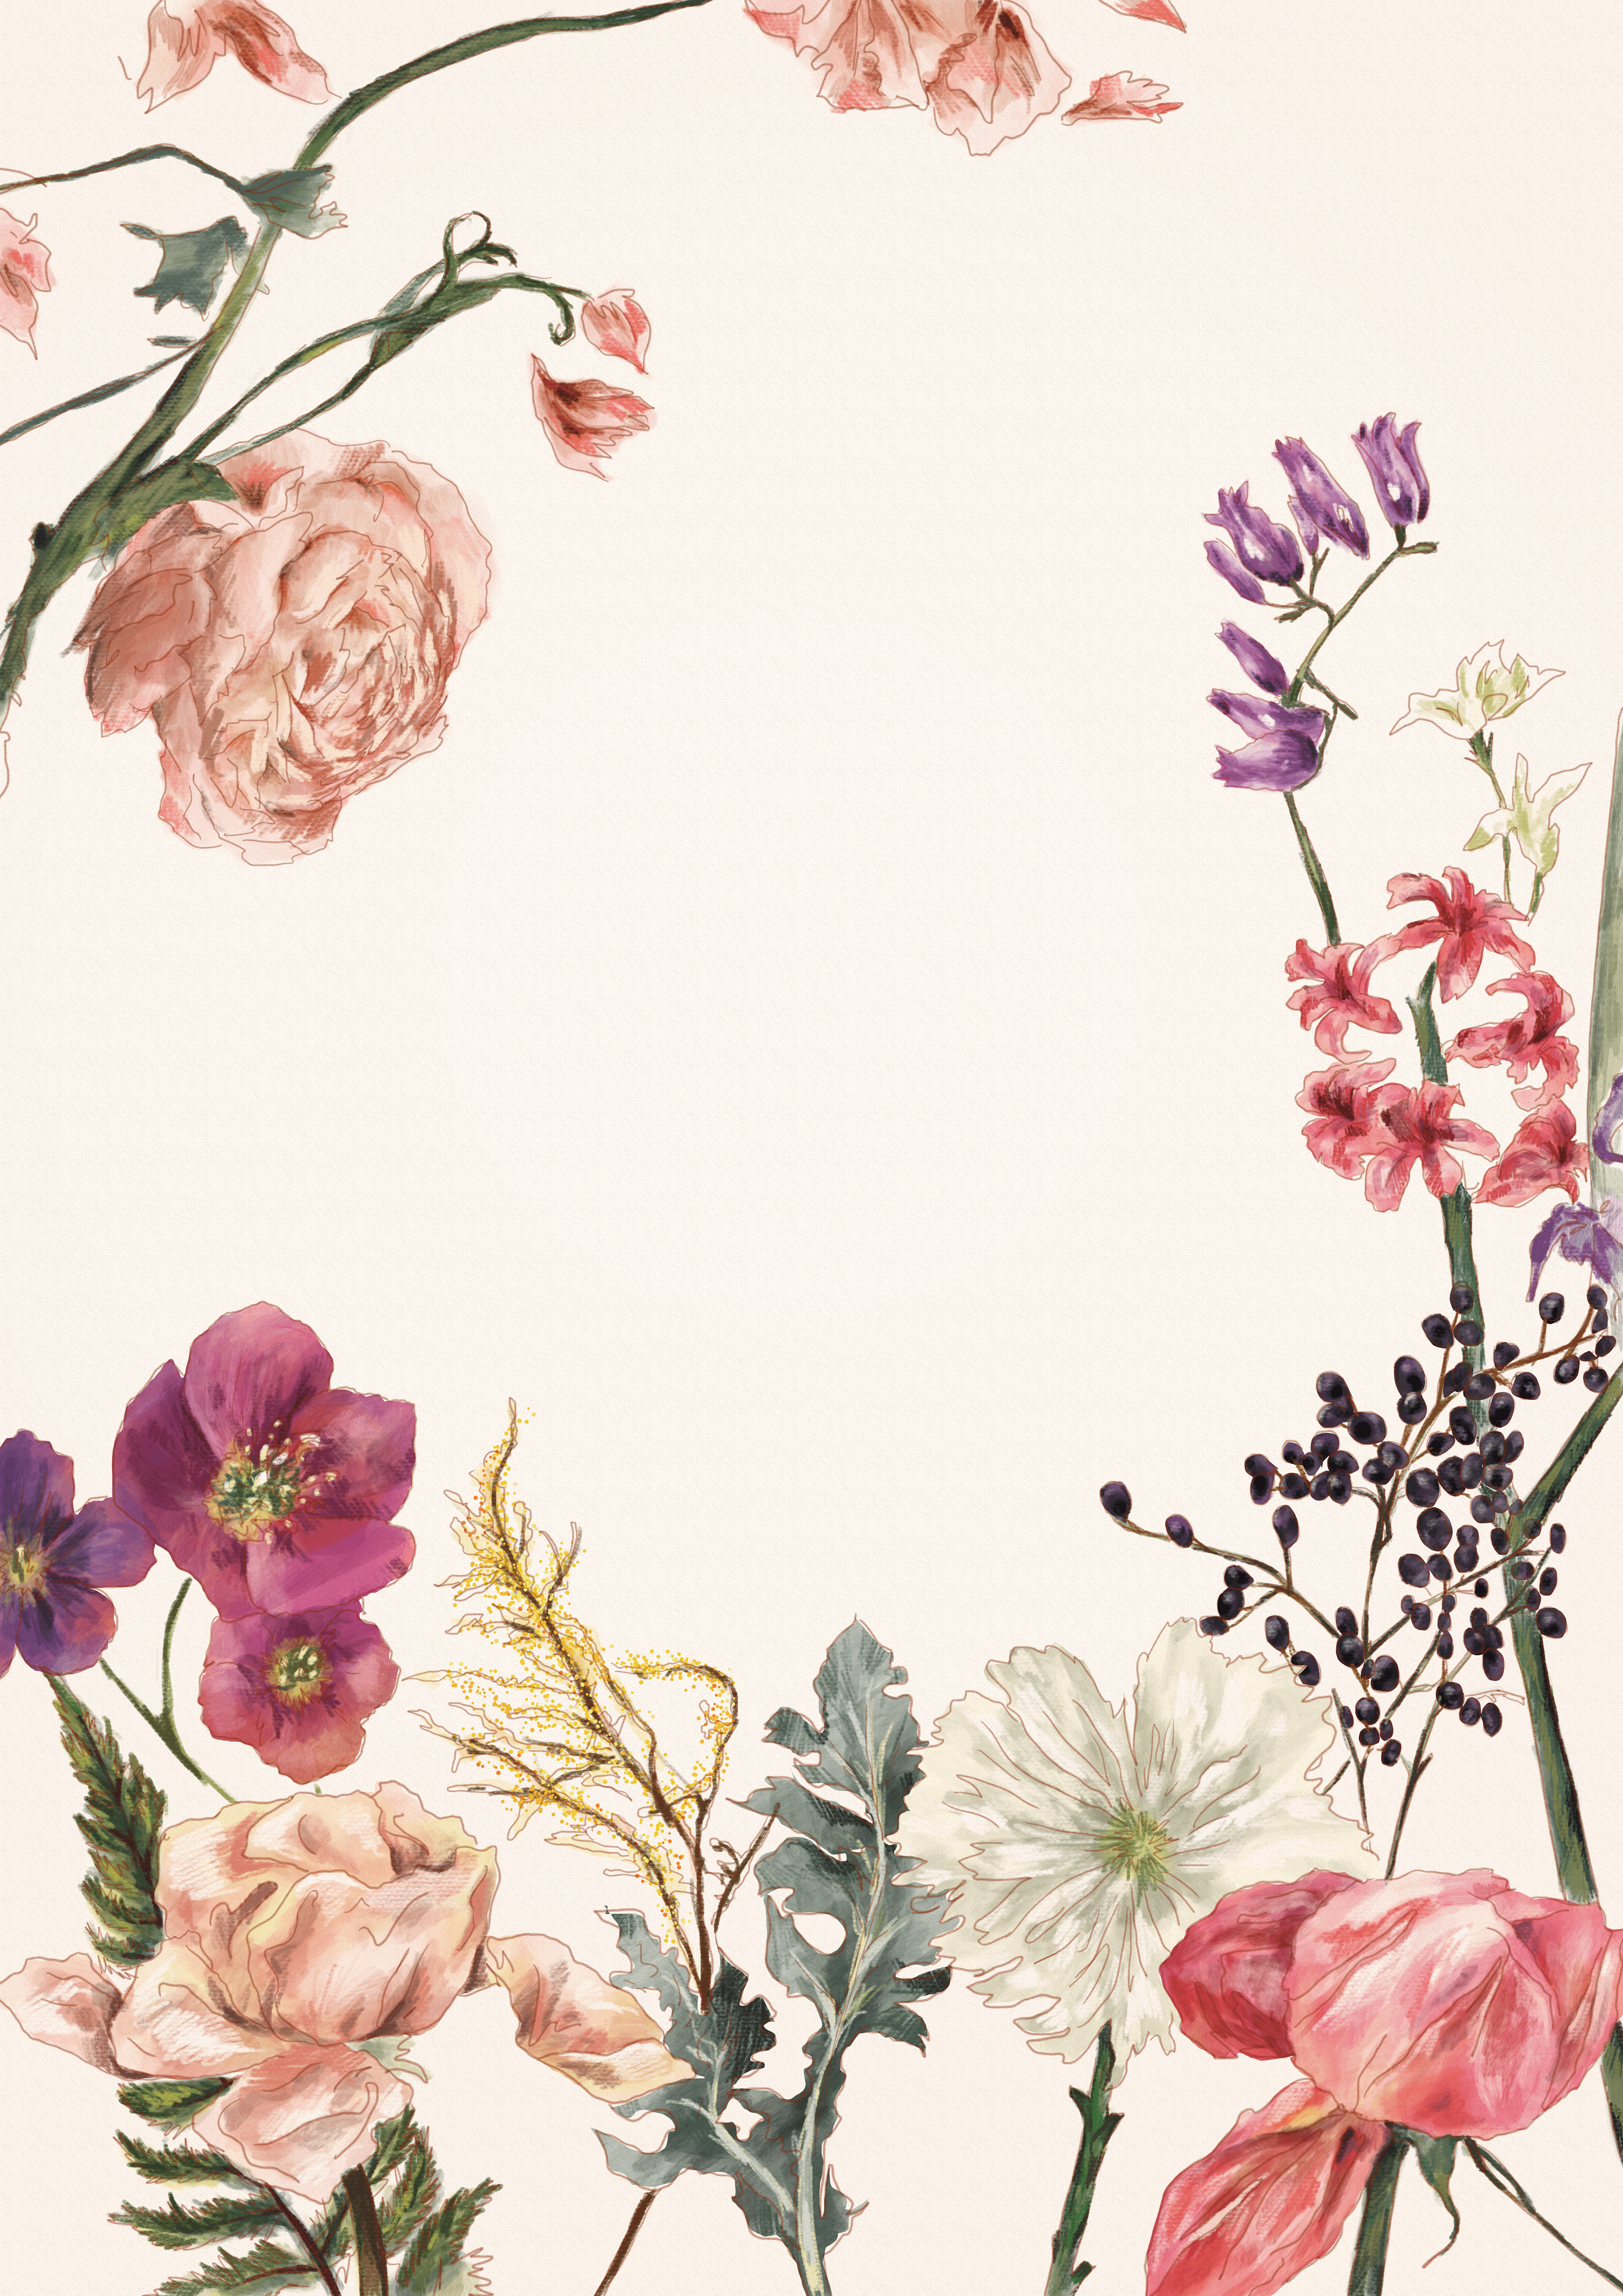 미라 신 flower illustrations for poster